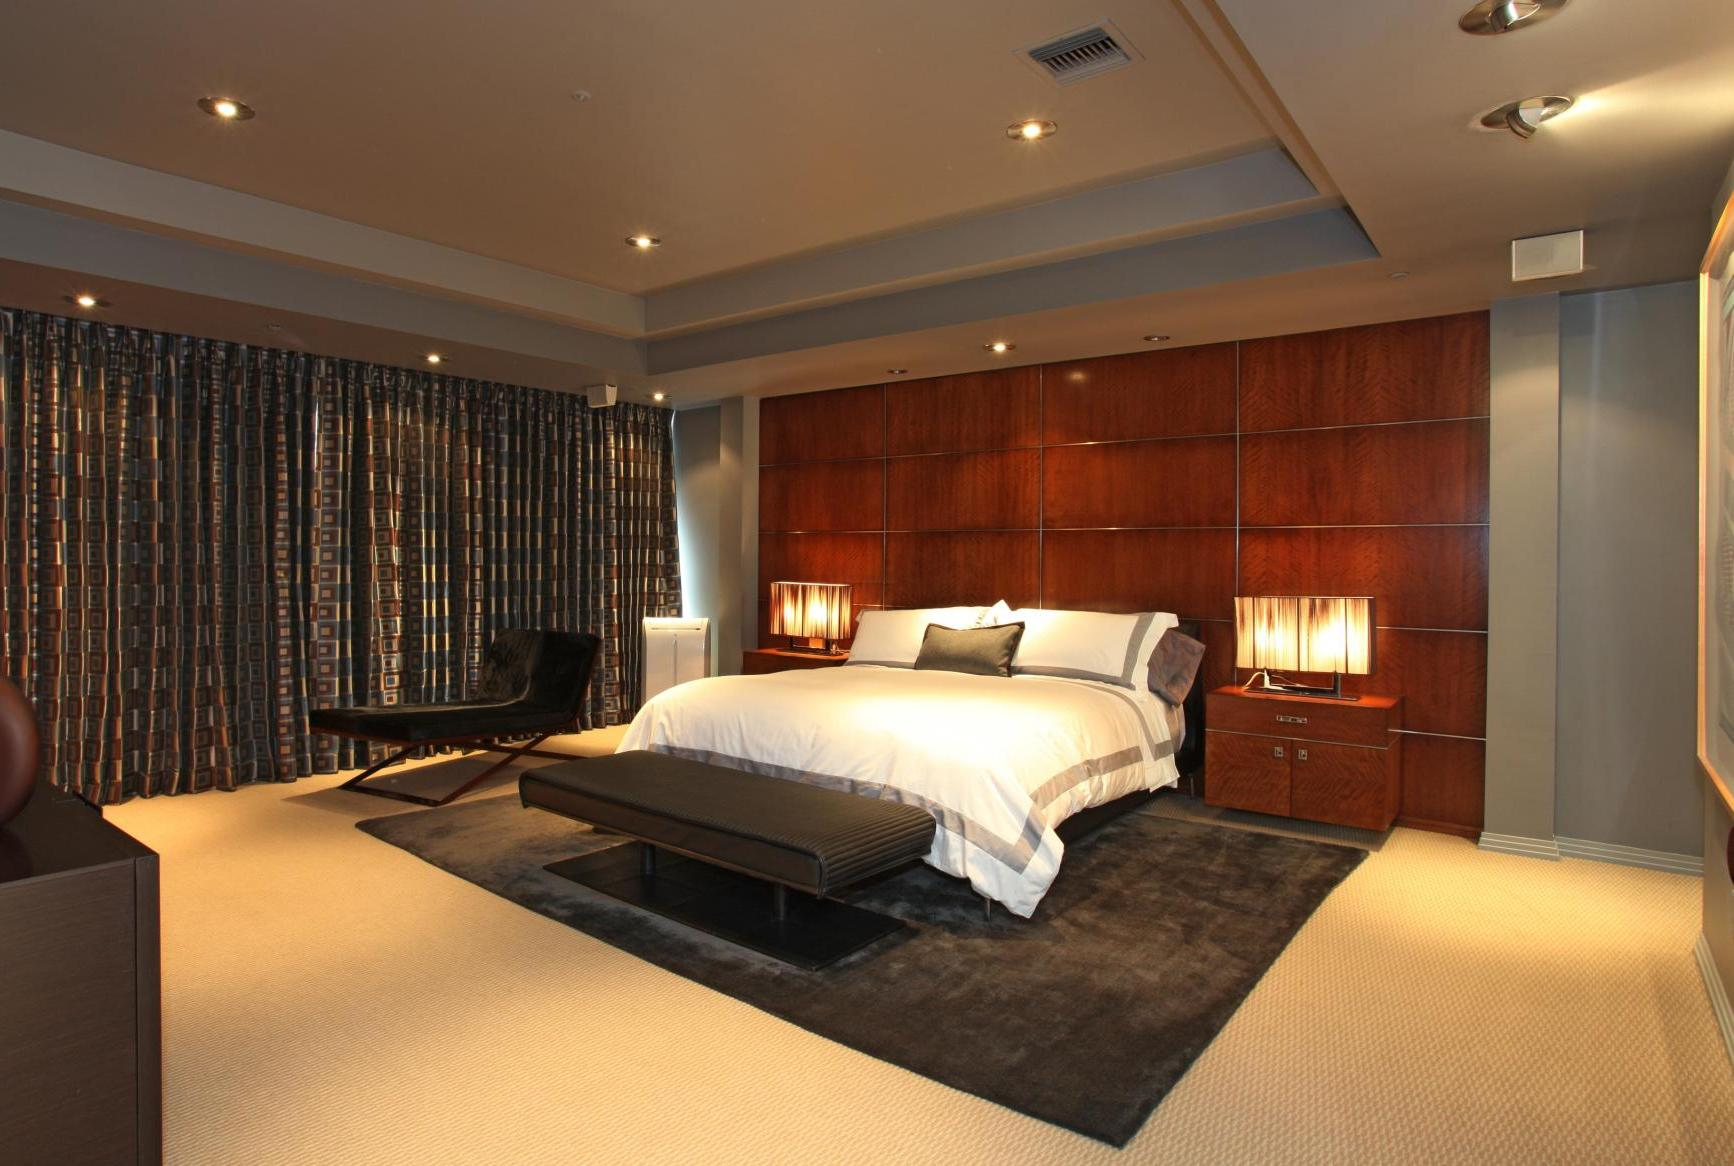 25 cool bedroom designs of 2015 for New master bedroom ideas